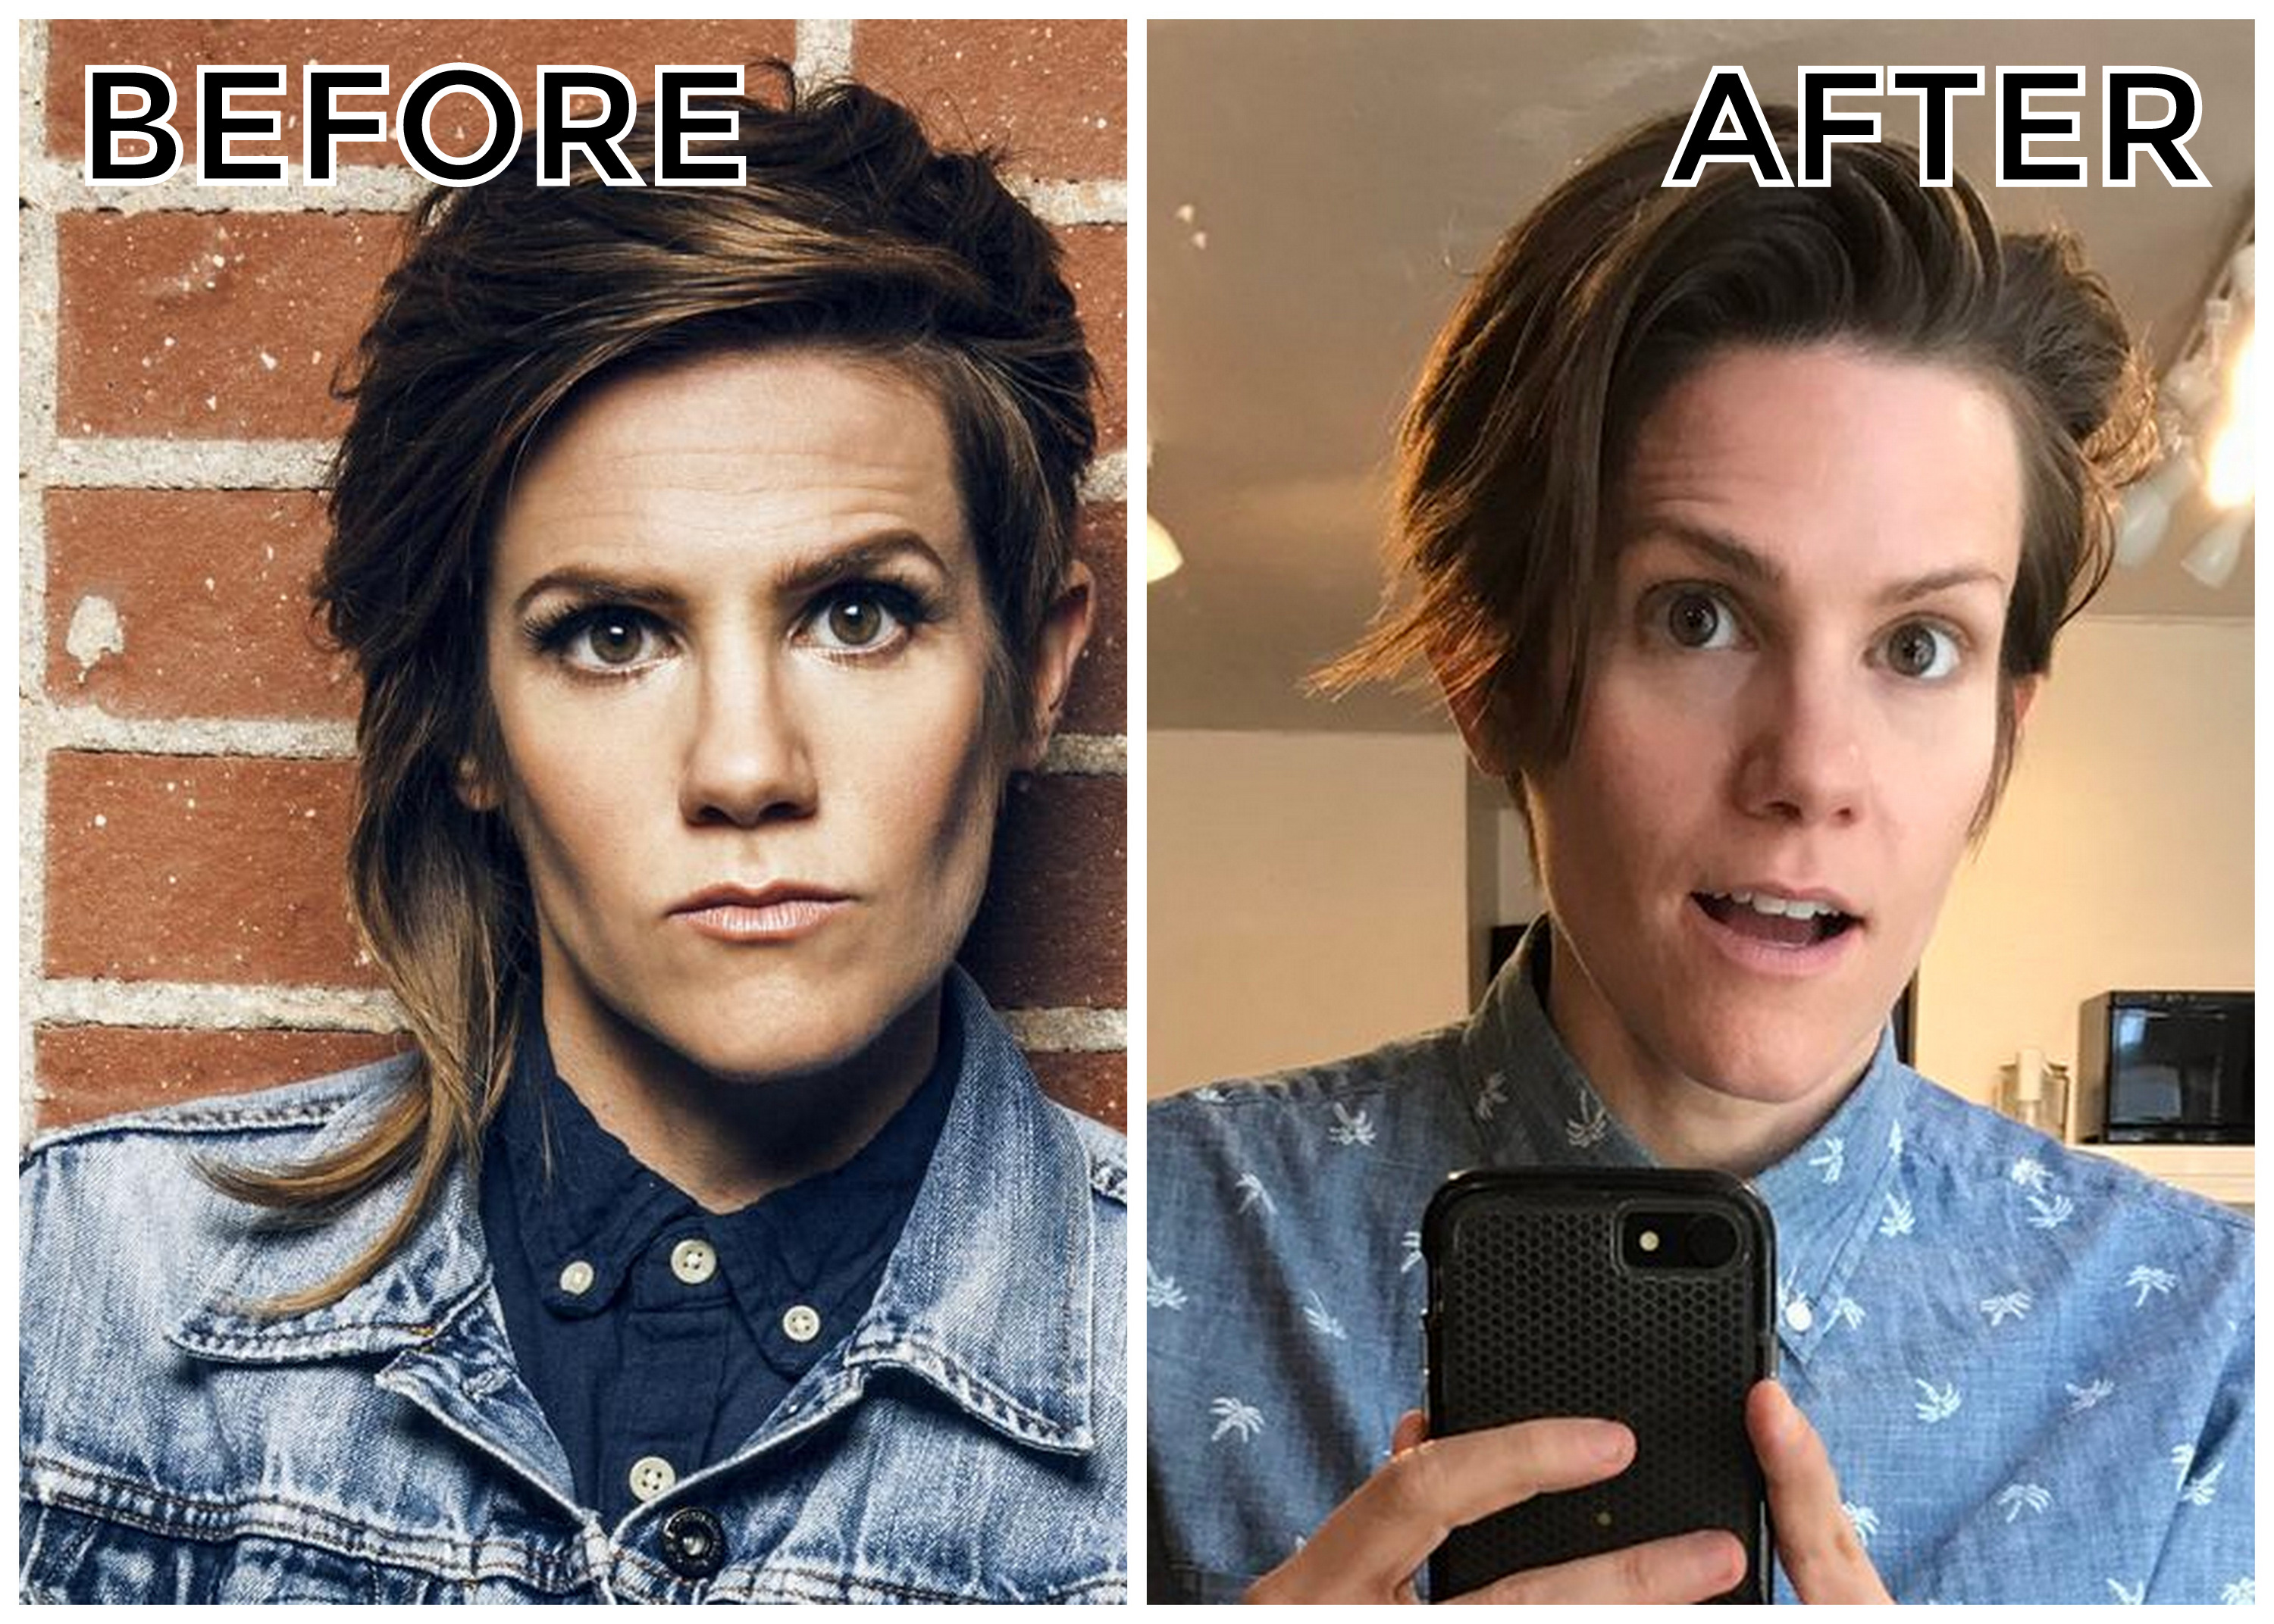 breaking: cameron esposito cuts off half of her iconic alternative